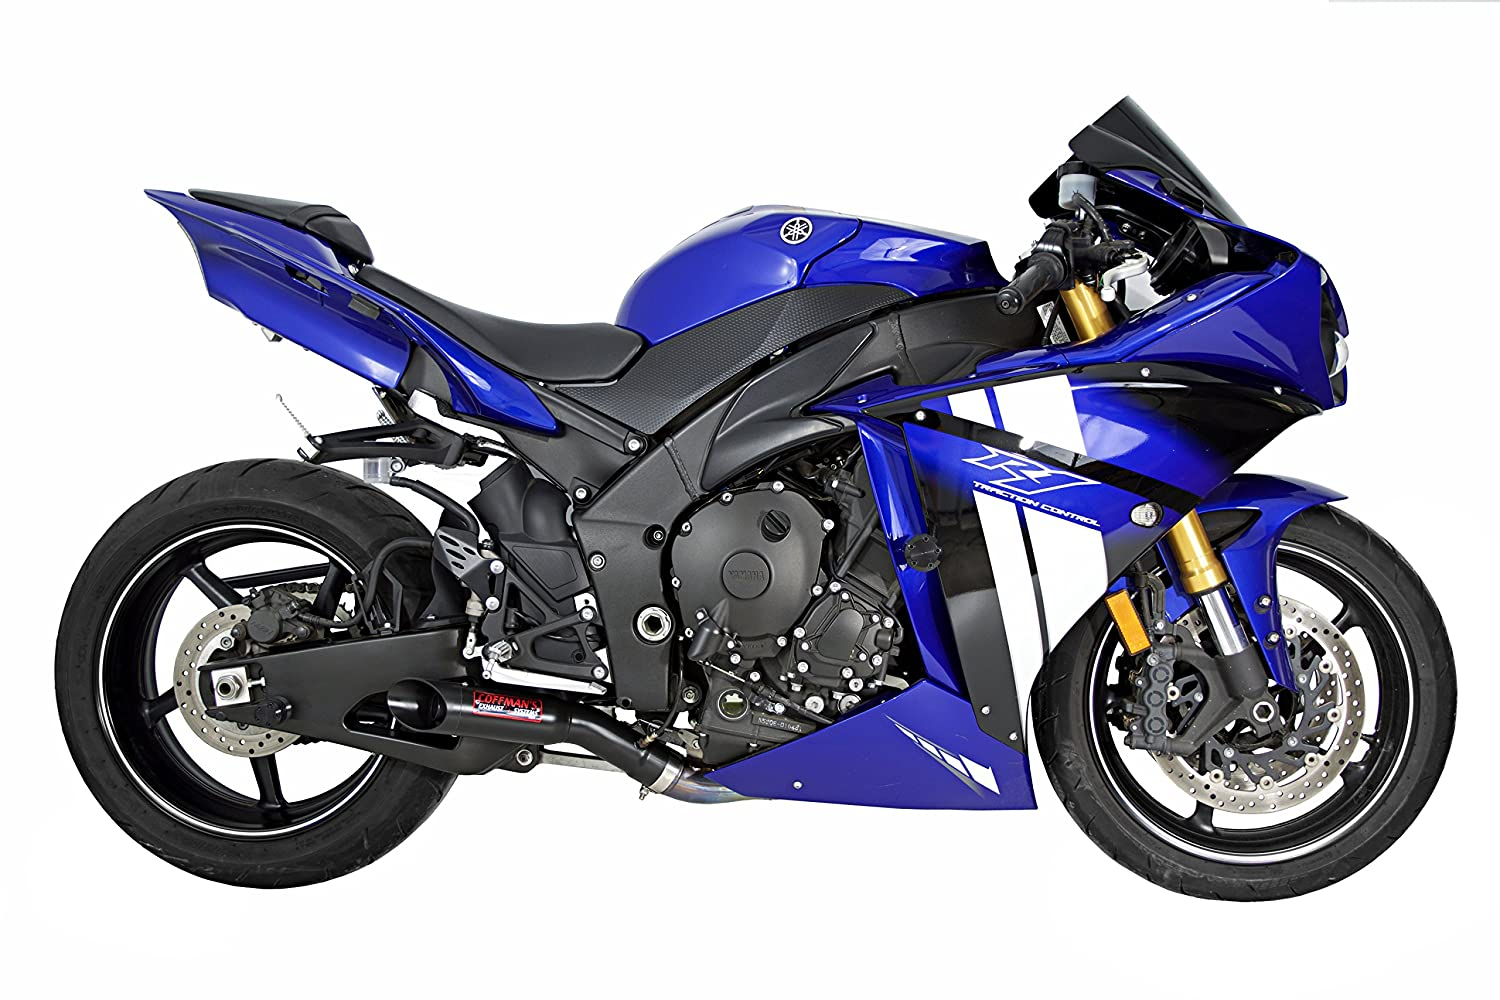 Beau Amazon.com: Coffmanu0027s Shorty Exhaust For Yamaha R1 (2009 14) Sportbike With  Black Tip: Automotive